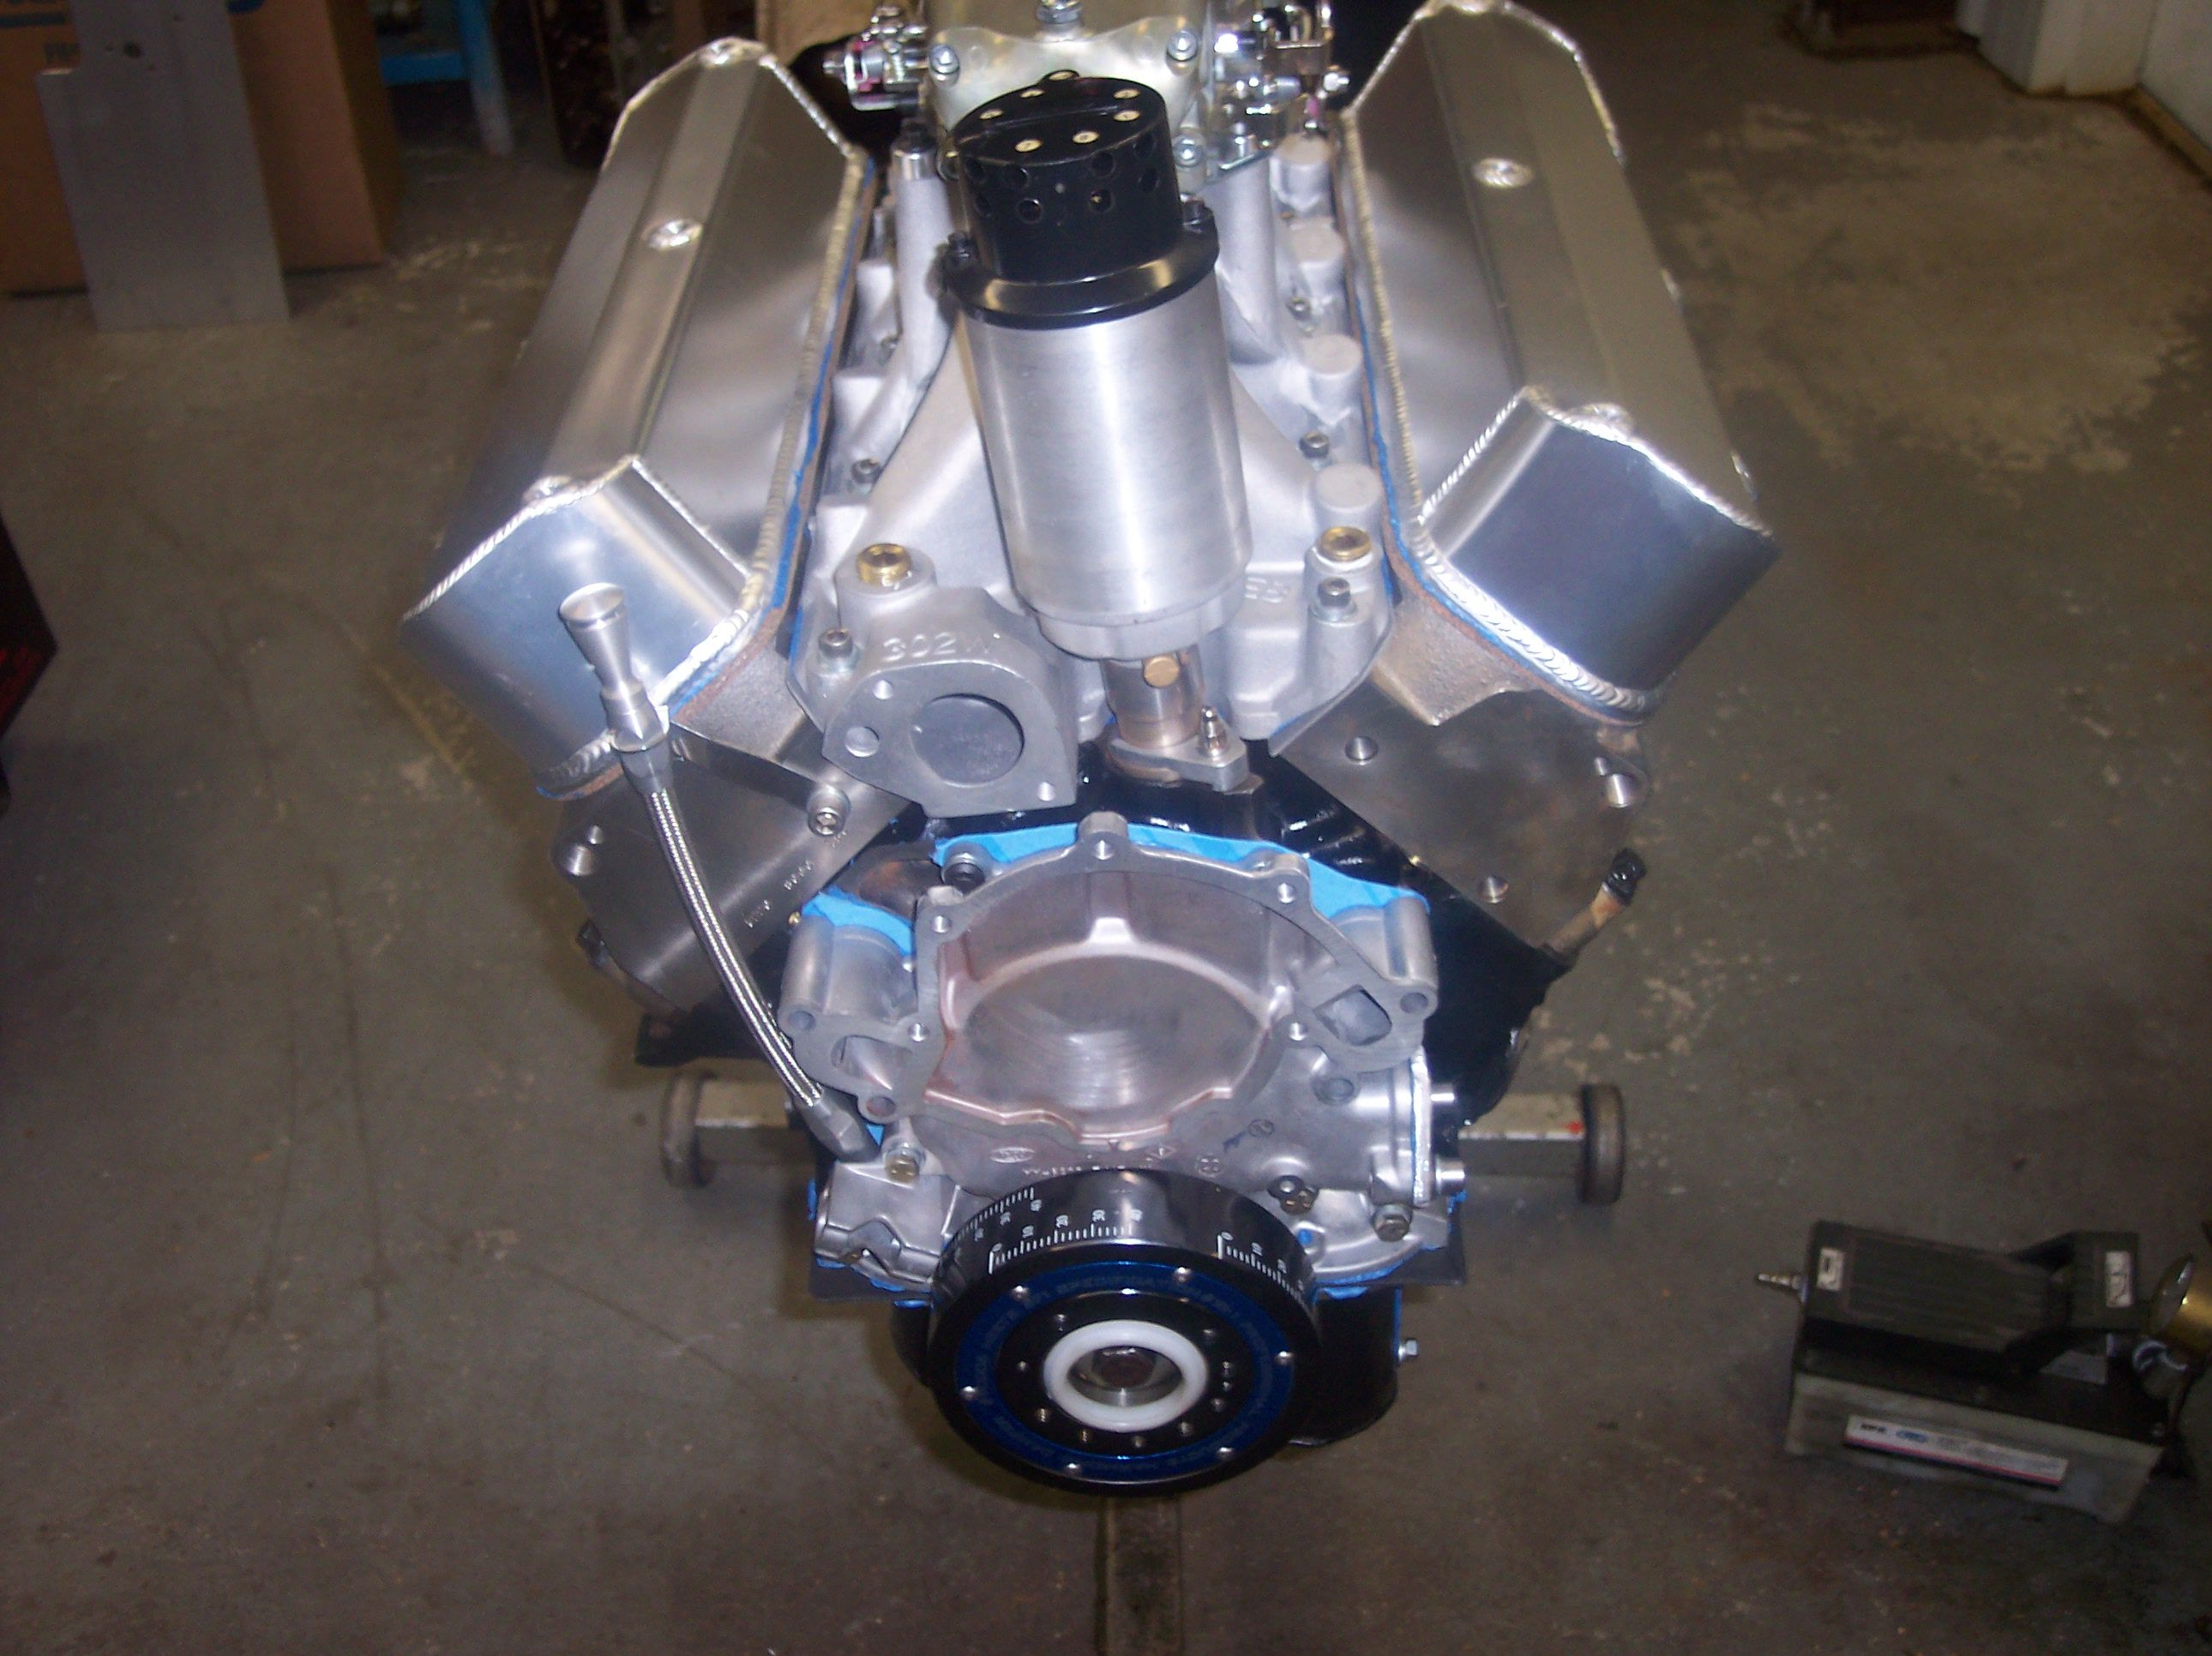 306 ford built for a 305 sprint car | Awesome Engines | Pinterest ...